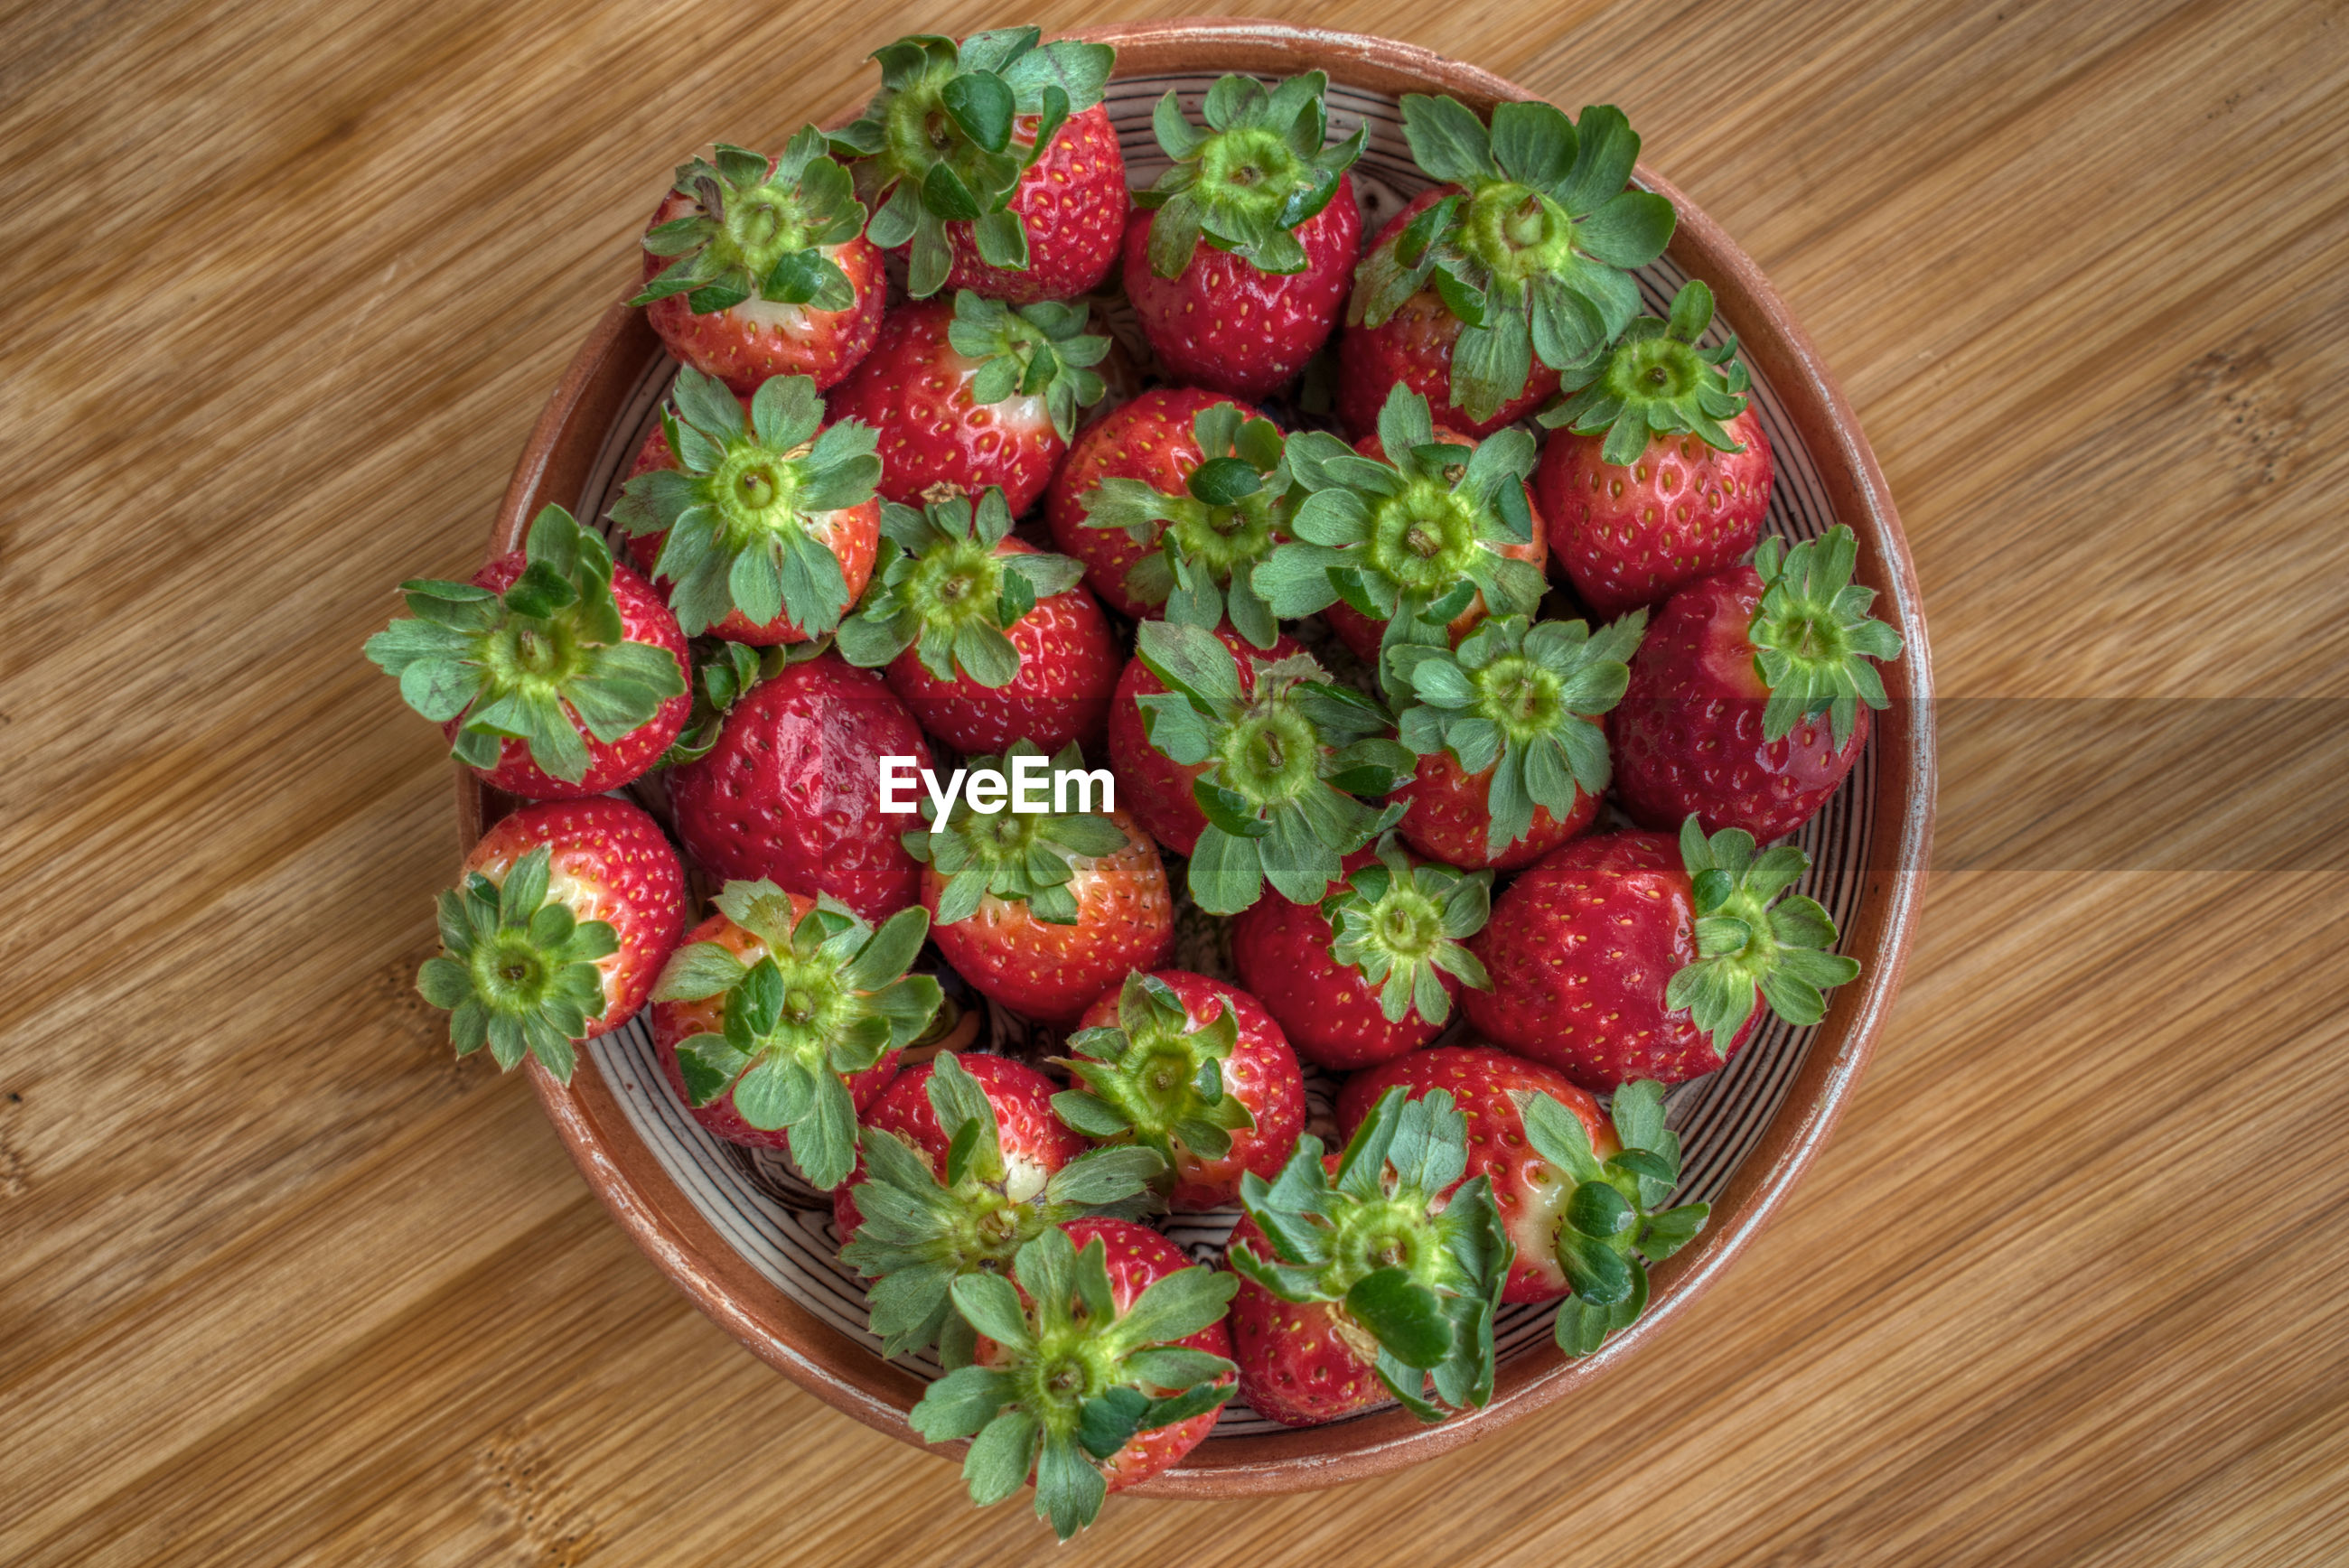 HIGH ANGLE VIEW OF STRAWBERRIES IN BOWL